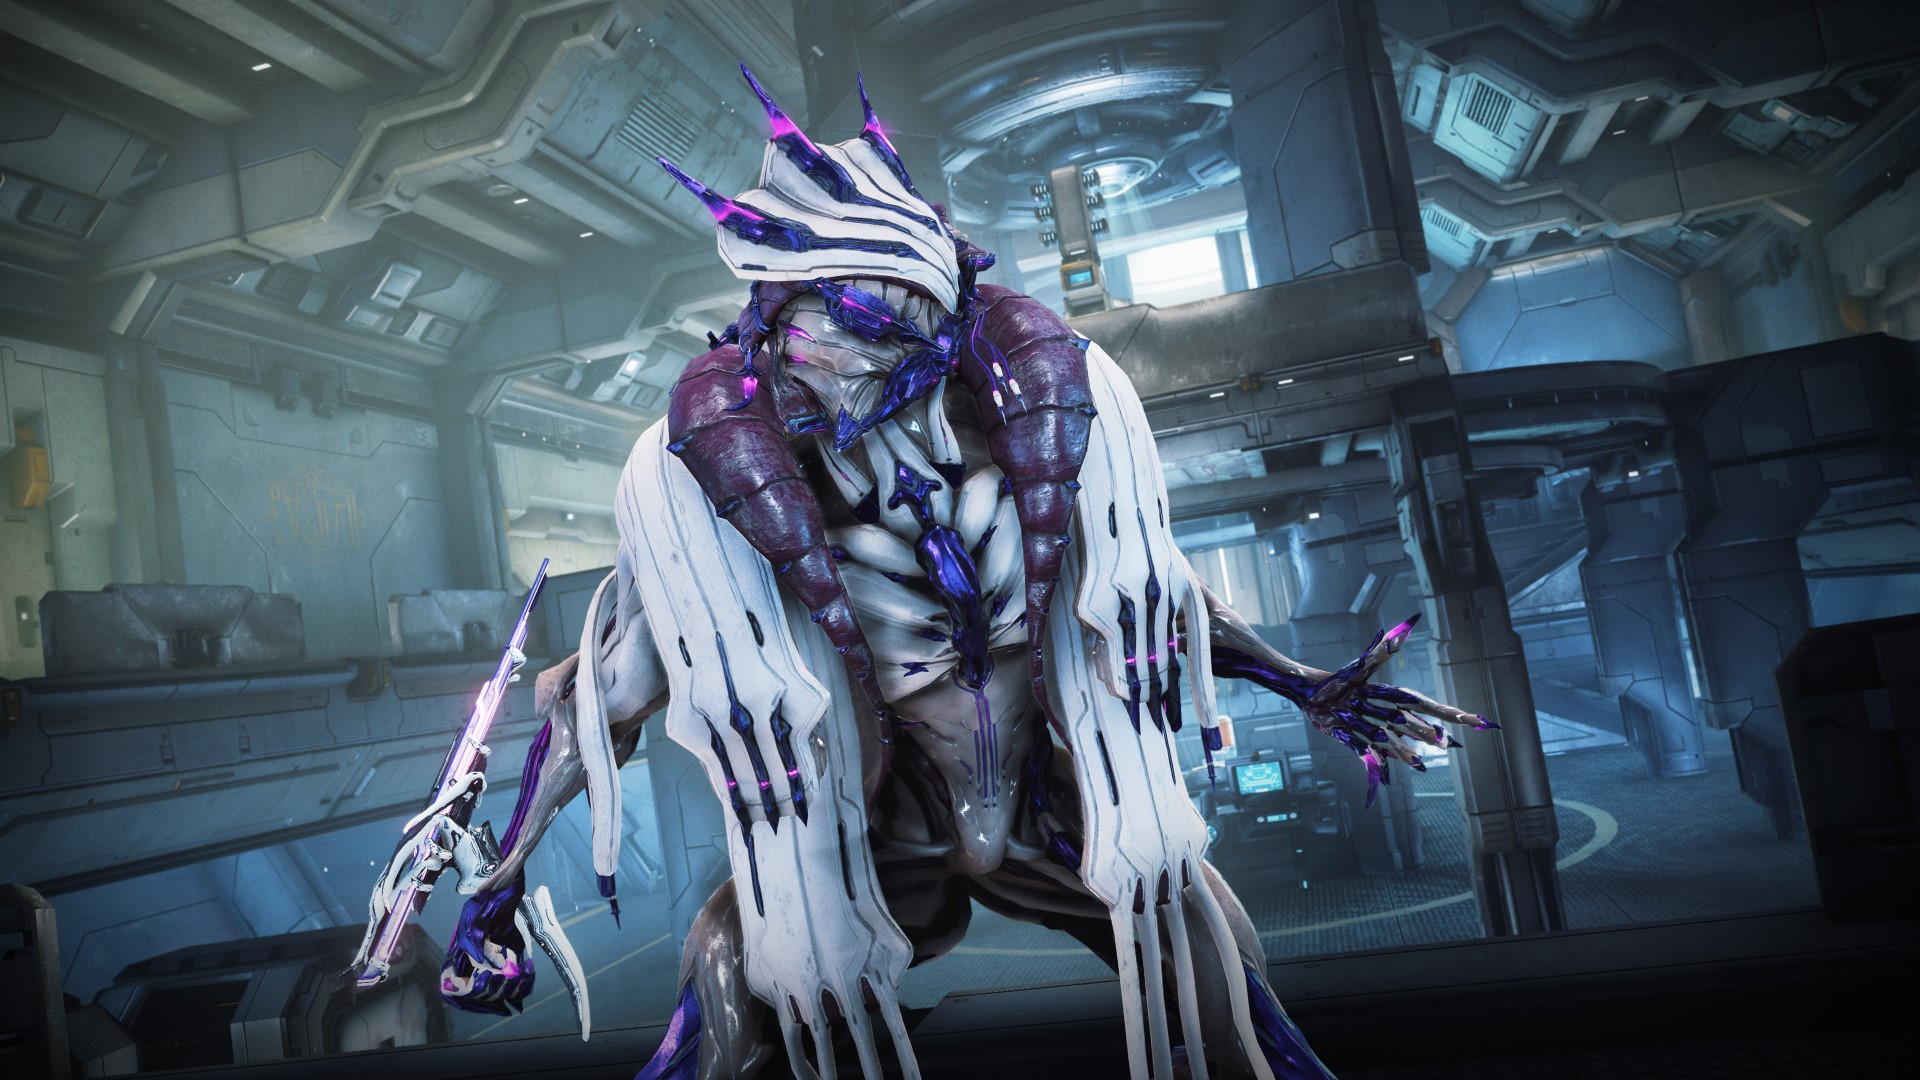 Warframe's Call of the Tempestarii update arrives with a kickass space shanty